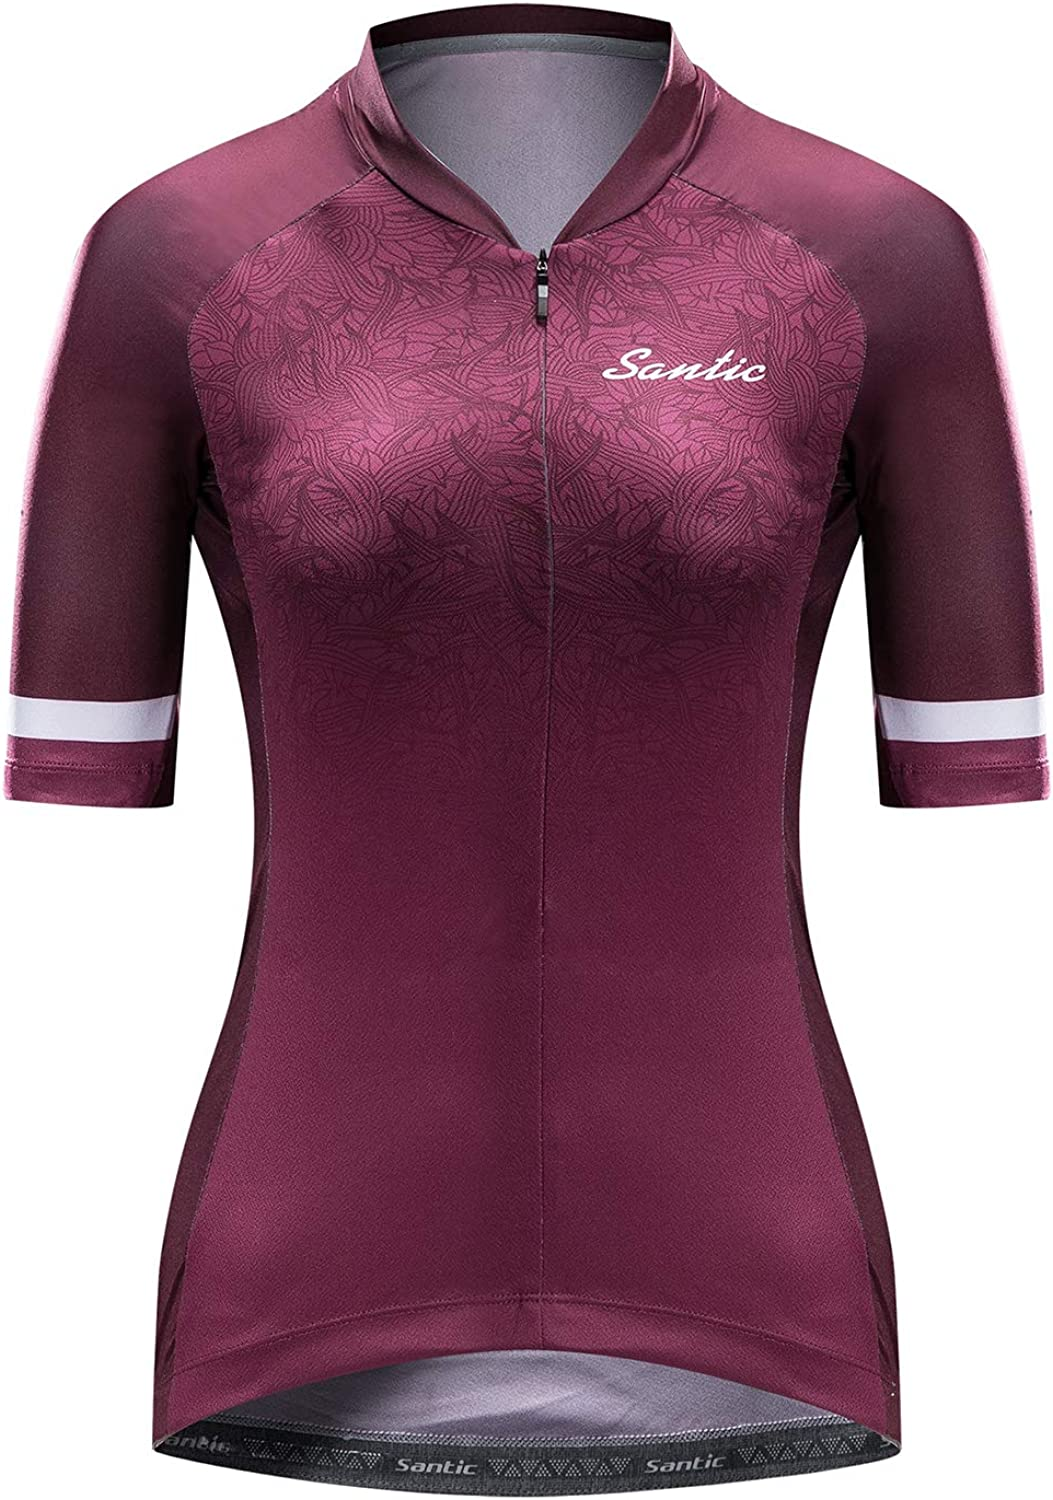 Santic Cycling Jersey Womens Shorts Sleeve Tops Bike Shirts Bicycle Jacket Full Zip with Pockets Sophie